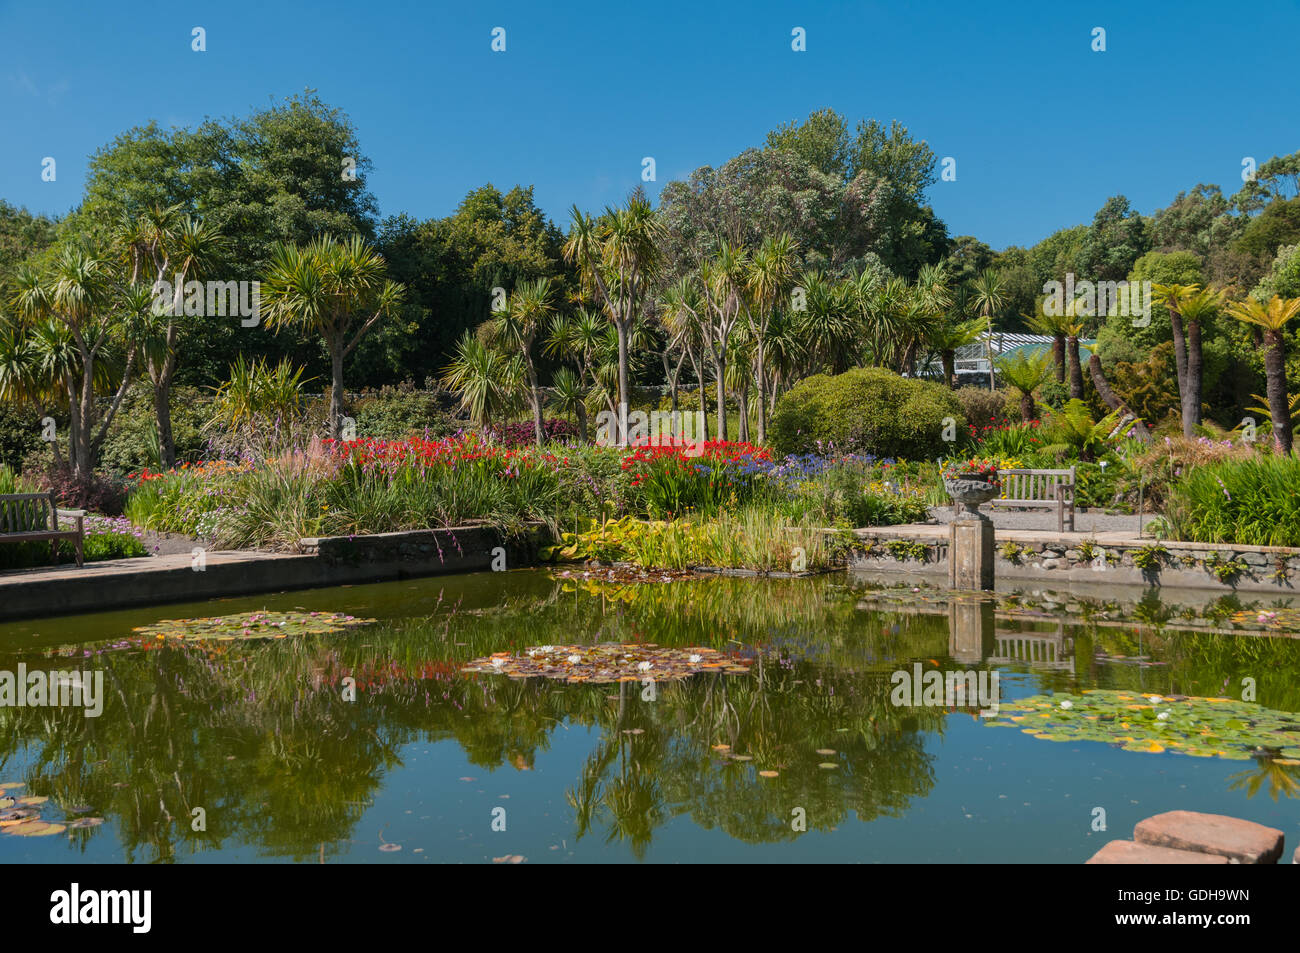 Mesmerizing Lily Pond With Palm Trees And Flowers Logan Botanic Garden Port  With Magnificent Lily Pond With Palm Trees And Flowers Logan Botanic Garden Port Logan  Dumfries  Galloway Scotland With Delectable White Garden Bench Also Sinclair Gardens Investments In Addition Garden Centre Hungerford And Gardener From Desperate Housewives As Well As Image Of Garden Hoe Additionally Garden Plant Sale From Alamycom With   Magnificent Lily Pond With Palm Trees And Flowers Logan Botanic Garden Port  With Delectable Lily Pond With Palm Trees And Flowers Logan Botanic Garden Port Logan  Dumfries  Galloway Scotland And Mesmerizing White Garden Bench Also Sinclair Gardens Investments In Addition Garden Centre Hungerford From Alamycom